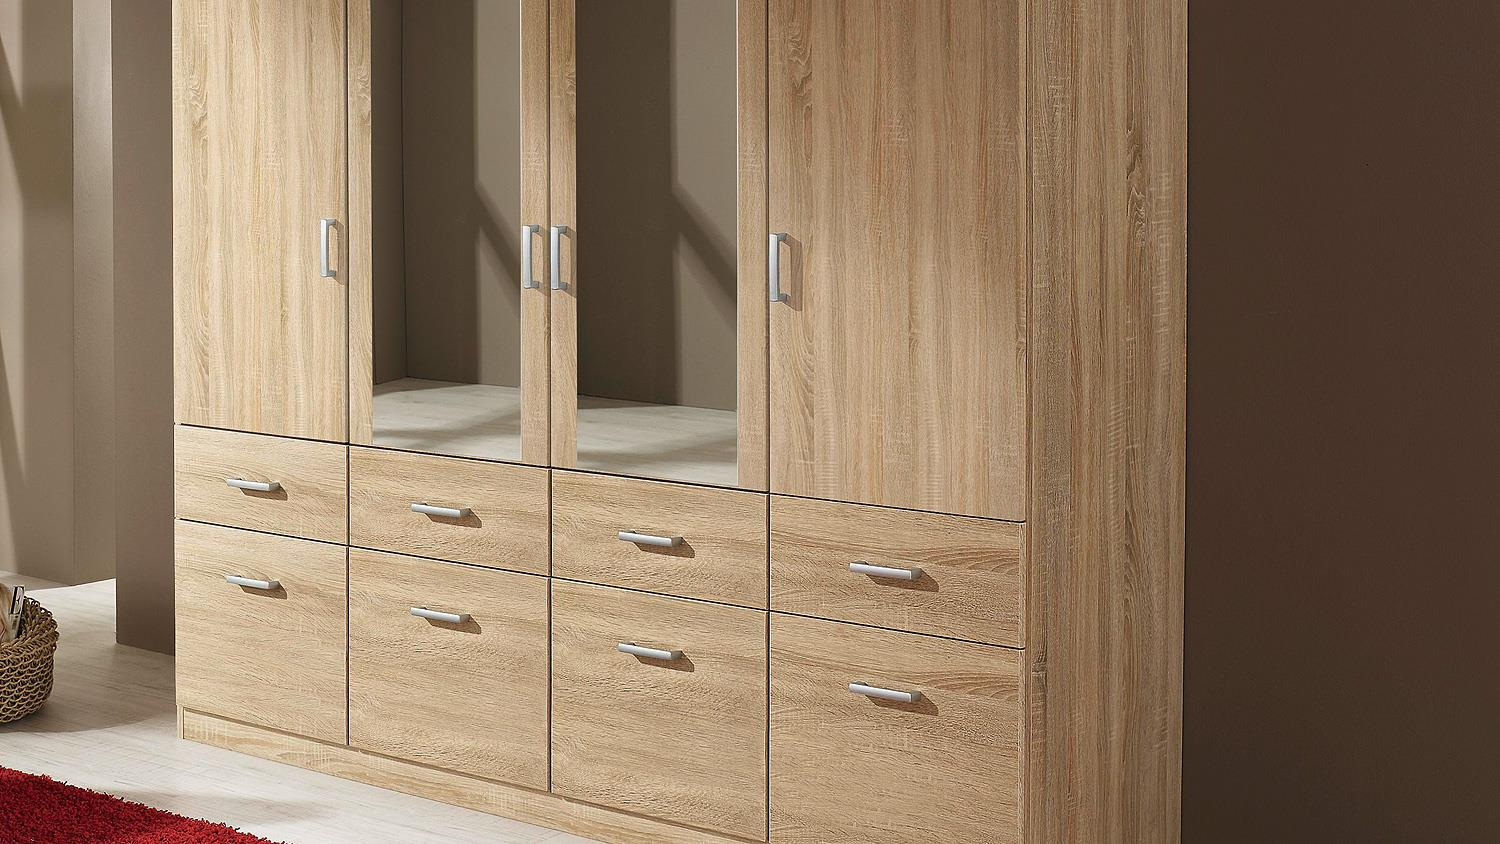 kleiderschrank bremen schrank sonoma eiche mit spiegel 181. Black Bedroom Furniture Sets. Home Design Ideas